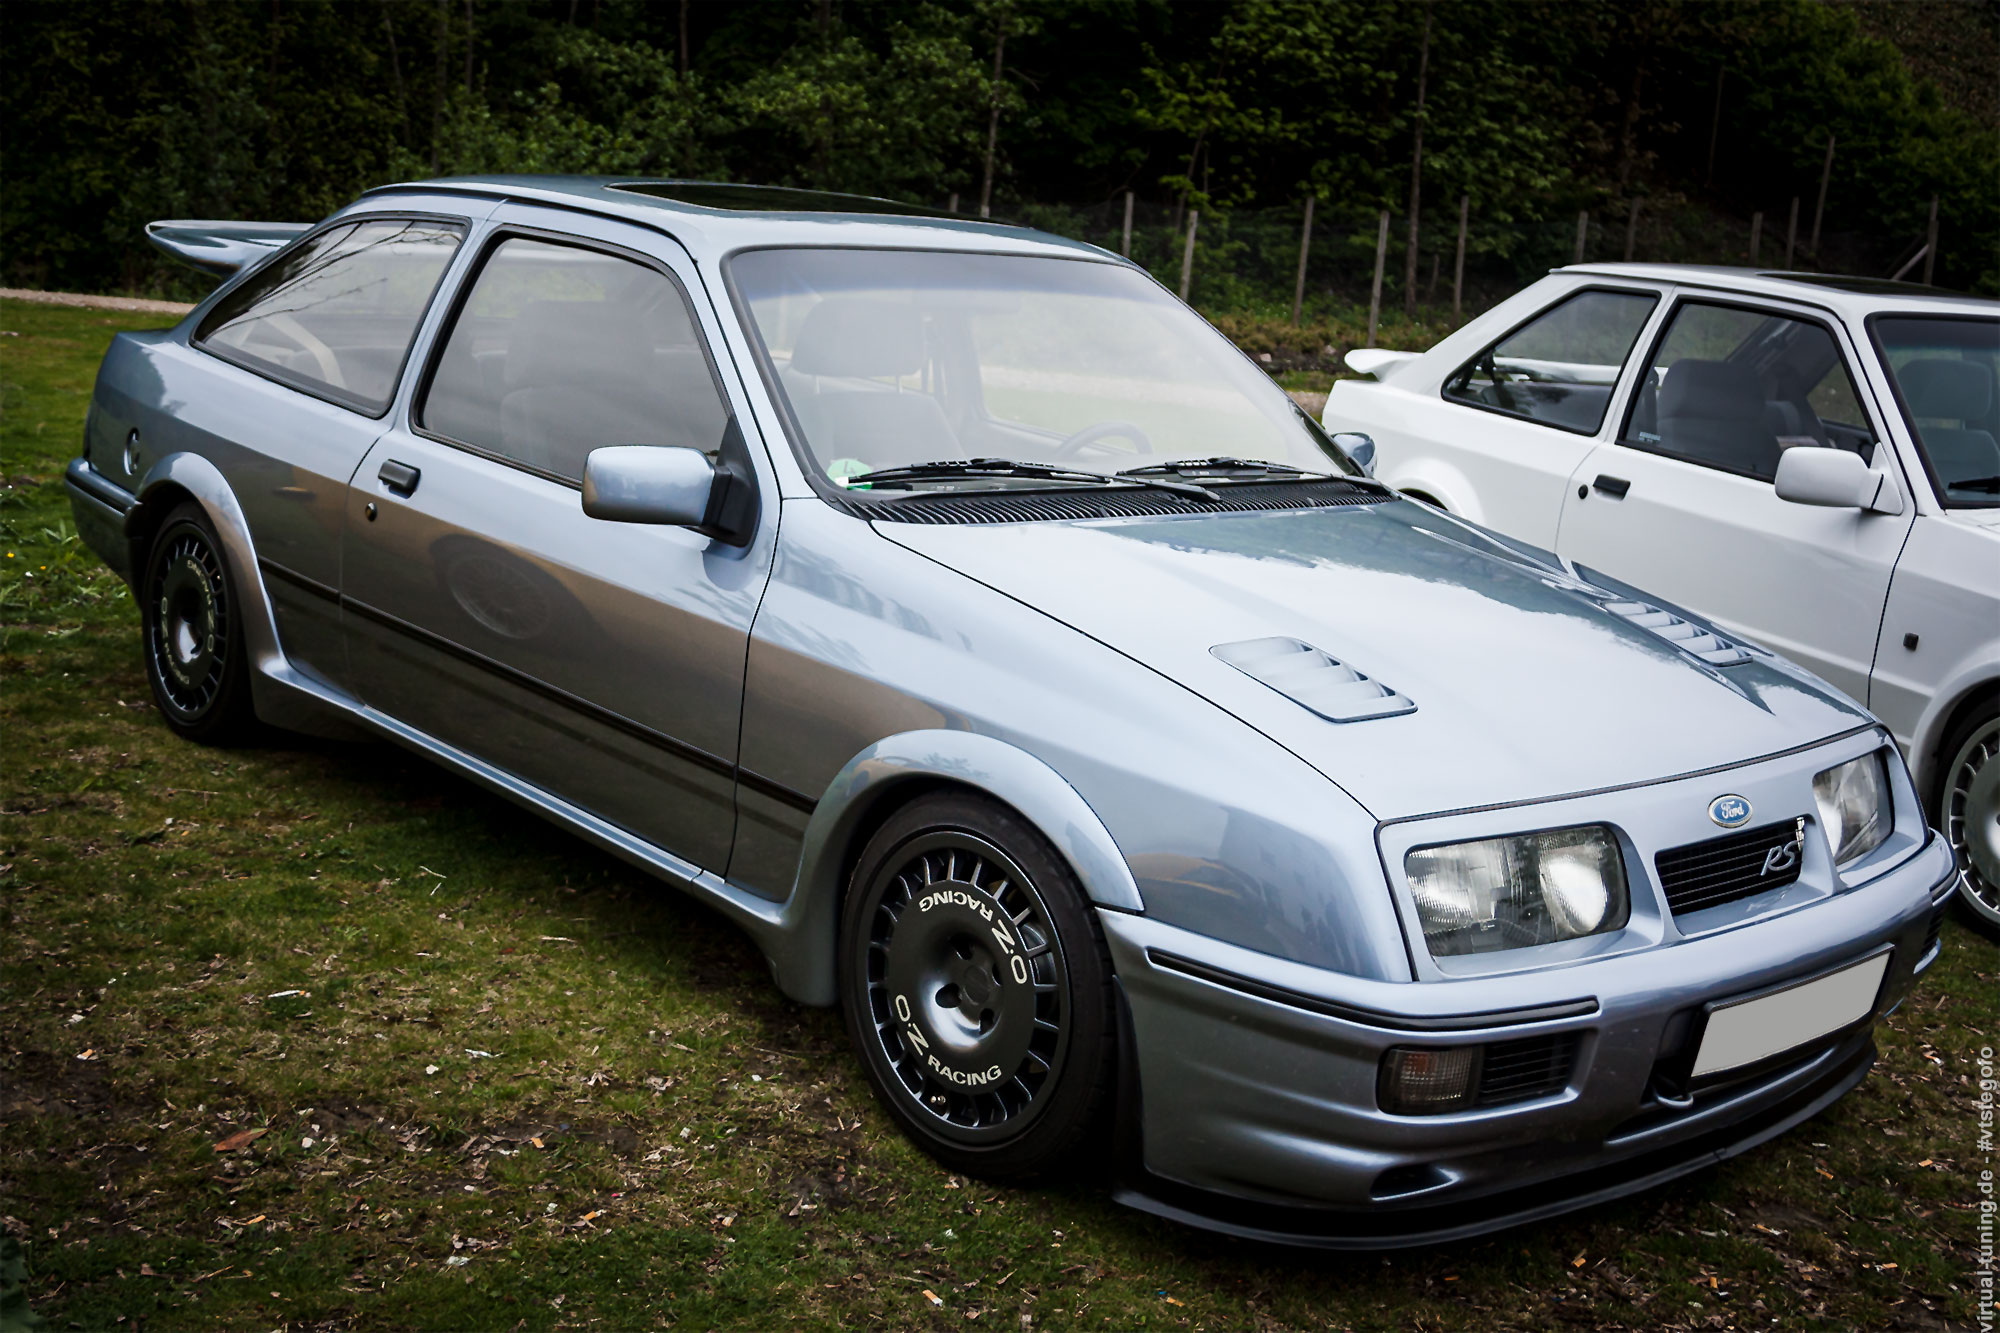 Ford Sierra RS Cosworth - Youngtimer Vestival 2012